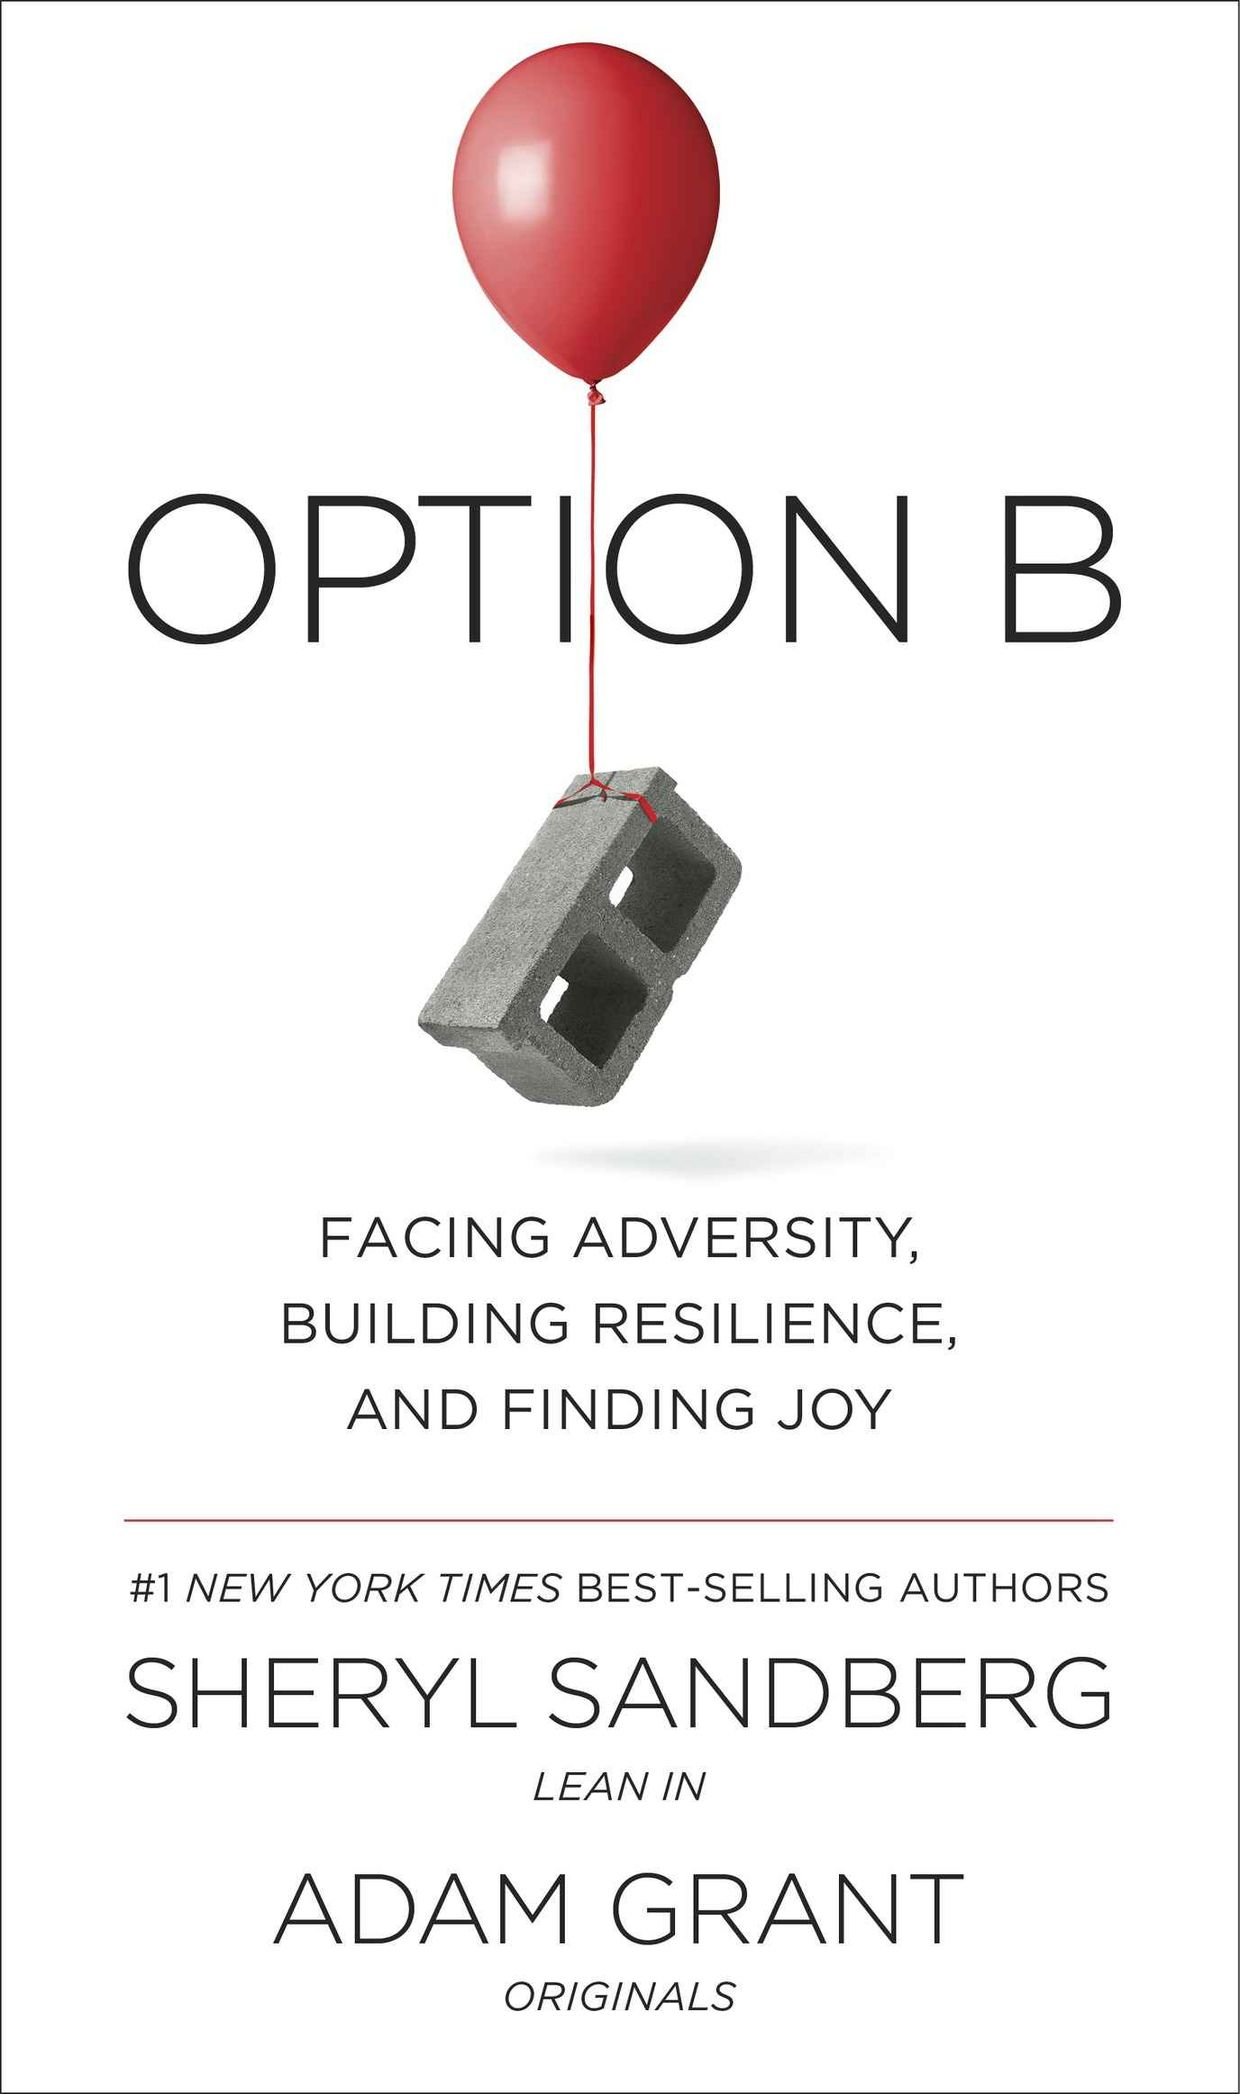 Option B: Facing Adversity, Building Resilience, and Finding Joy, by Sheryl Sandberg and Adam Grant